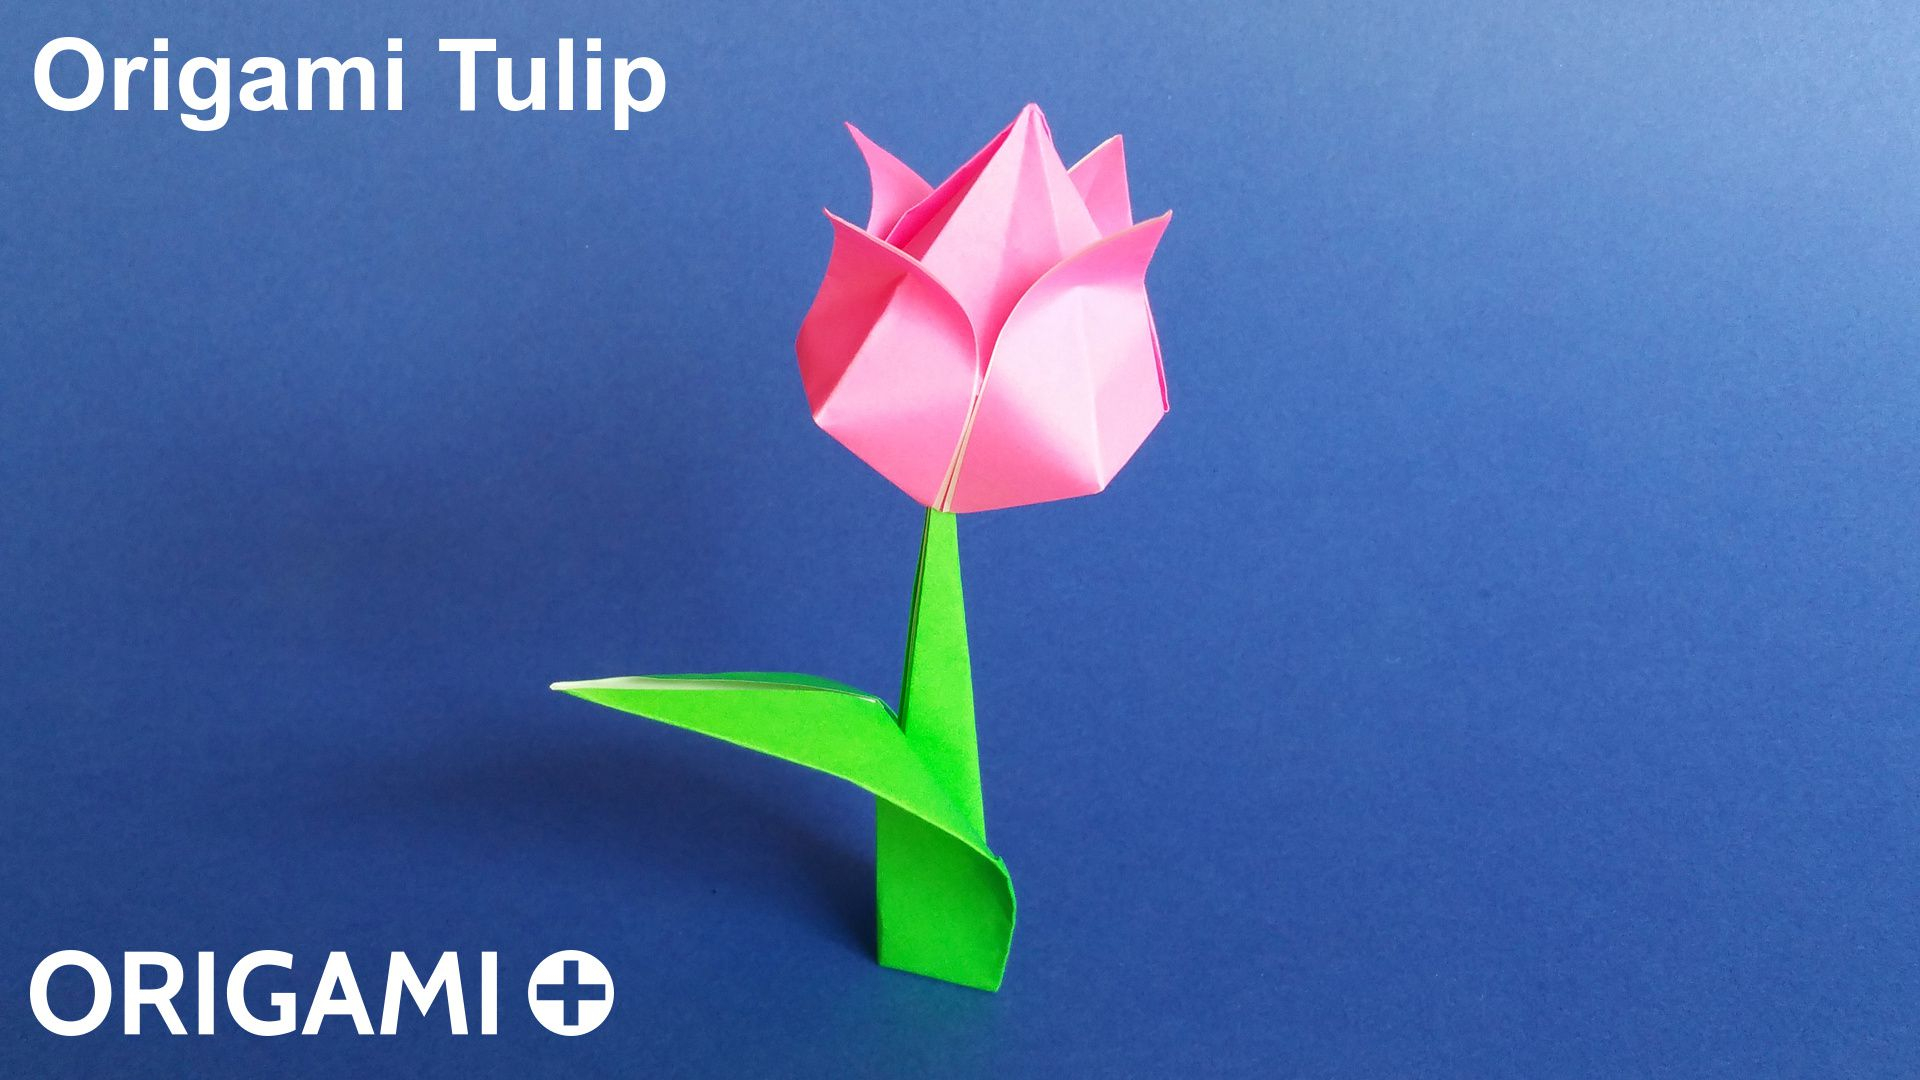 How To Make An Origami Tulip Origami Tulip